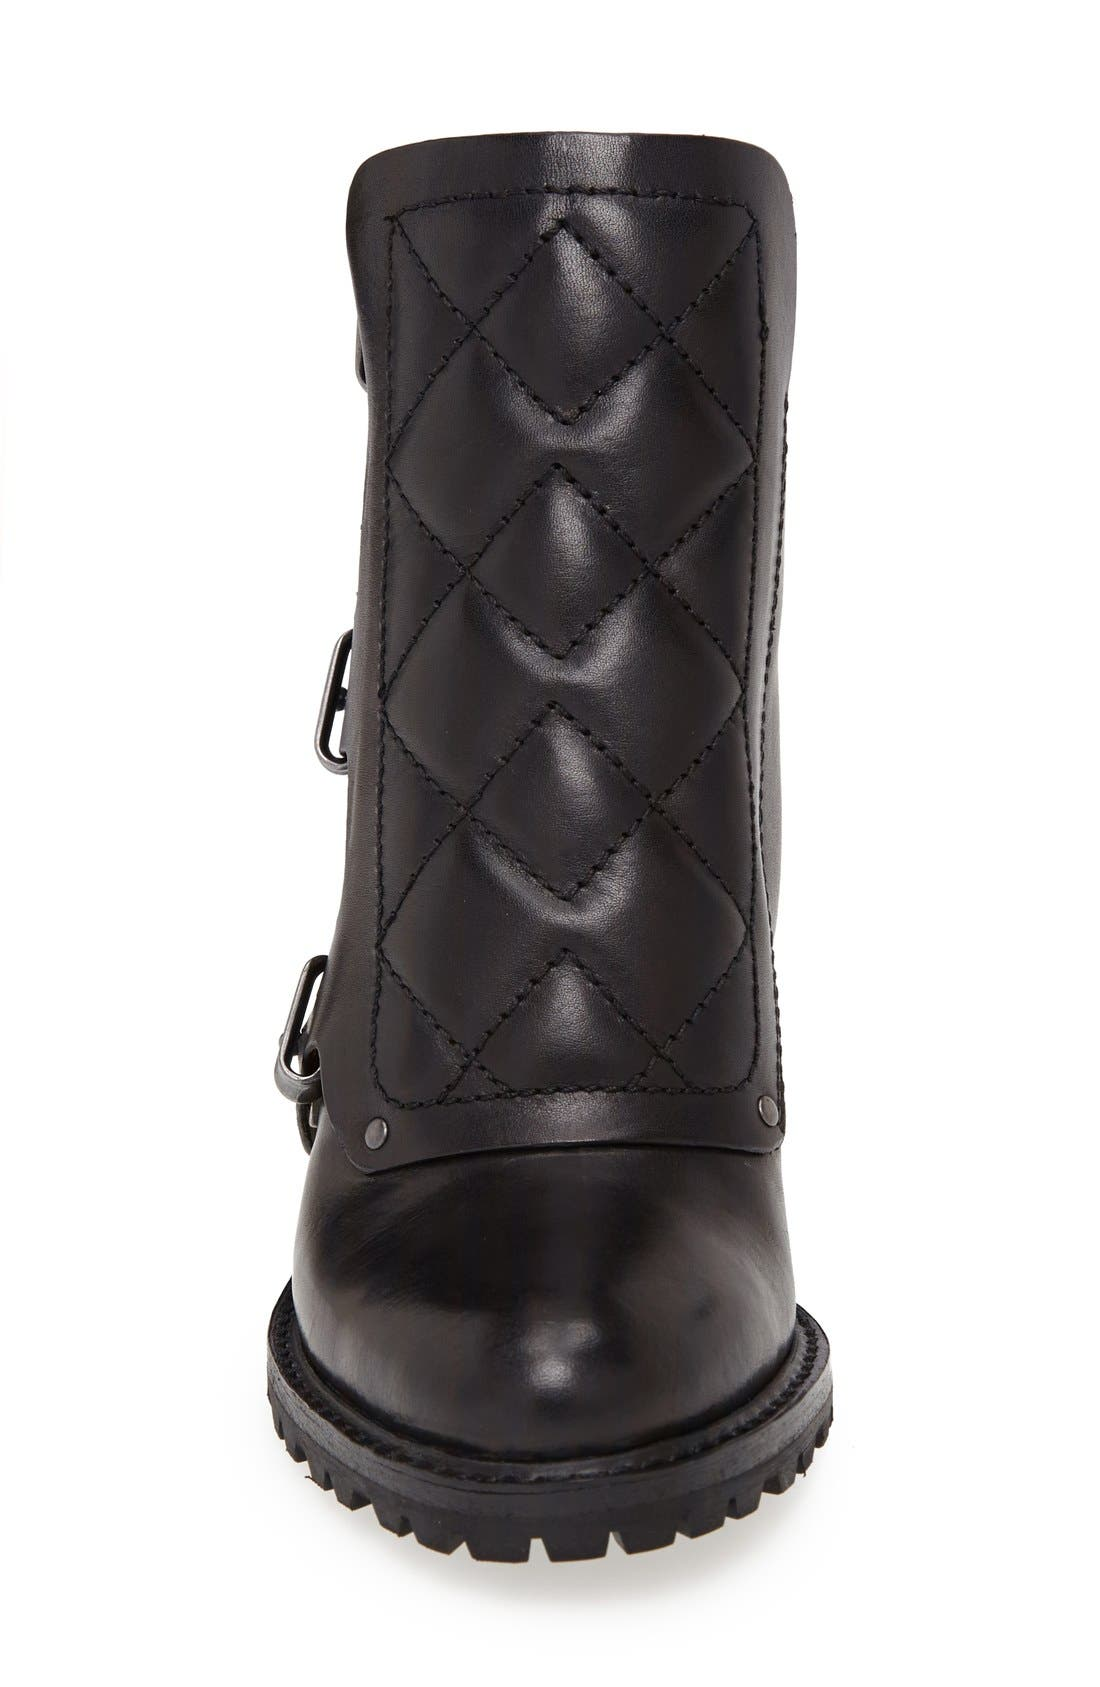 MARC BY MARC JACOBS Ankle Boot,                             Alternate thumbnail 3, color,                             001